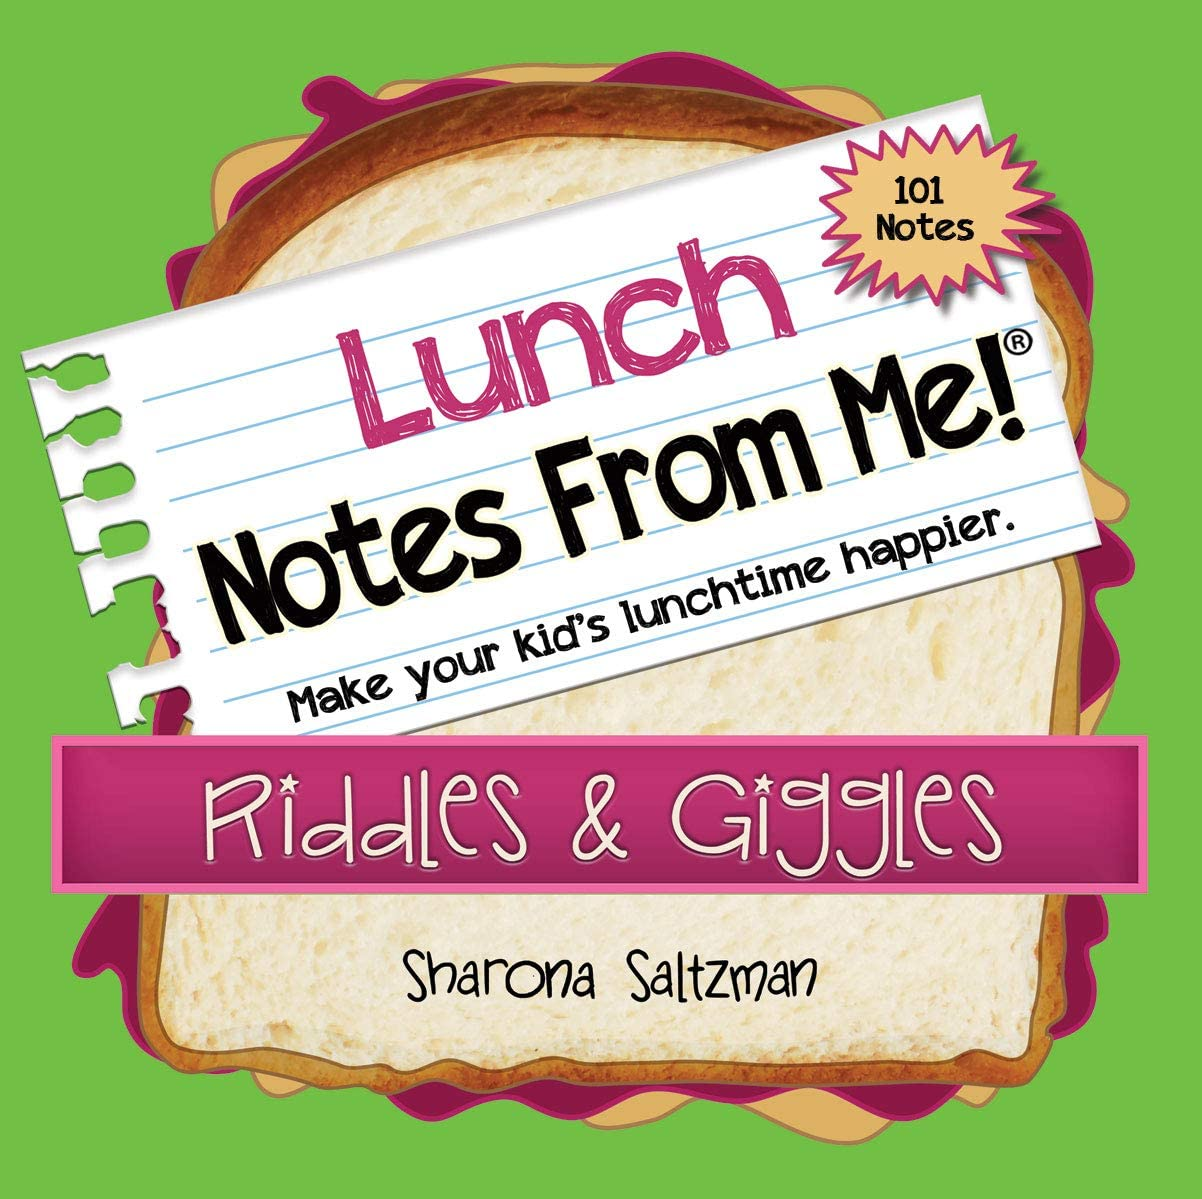 Lunch Notes From Me! Riddles & Giggle